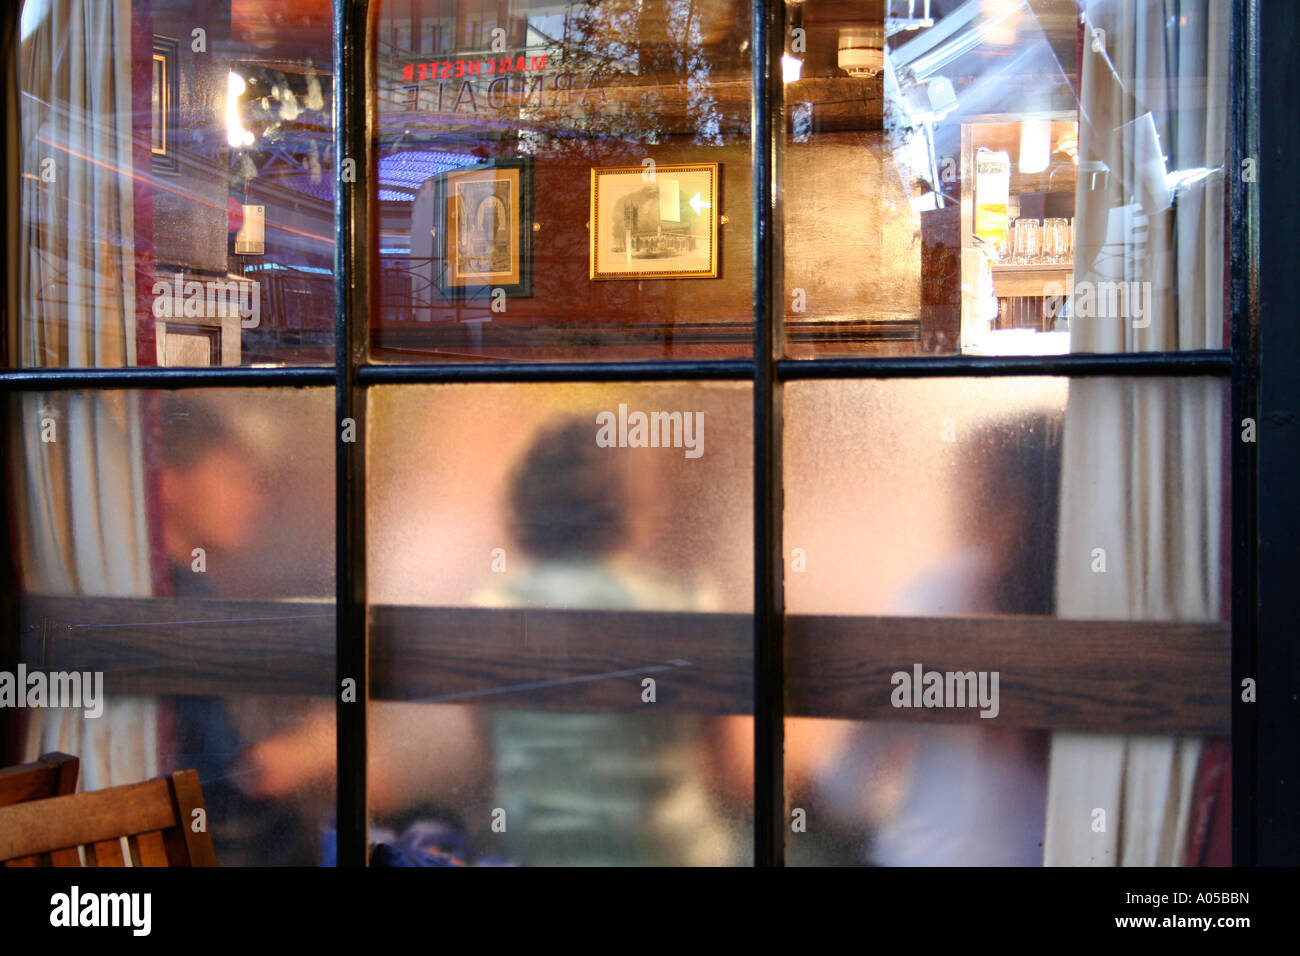 Pub interior, Manchester, UK - Stock Image